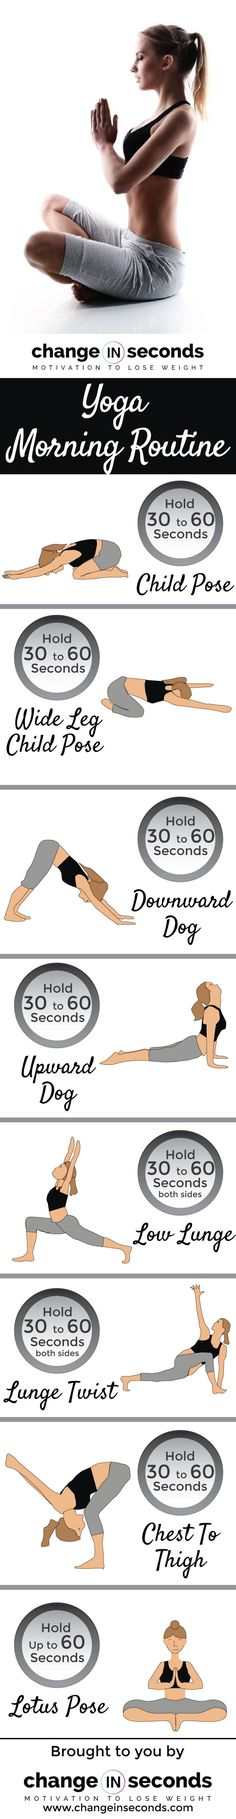 Yoga Morning Routine (Download PDF)